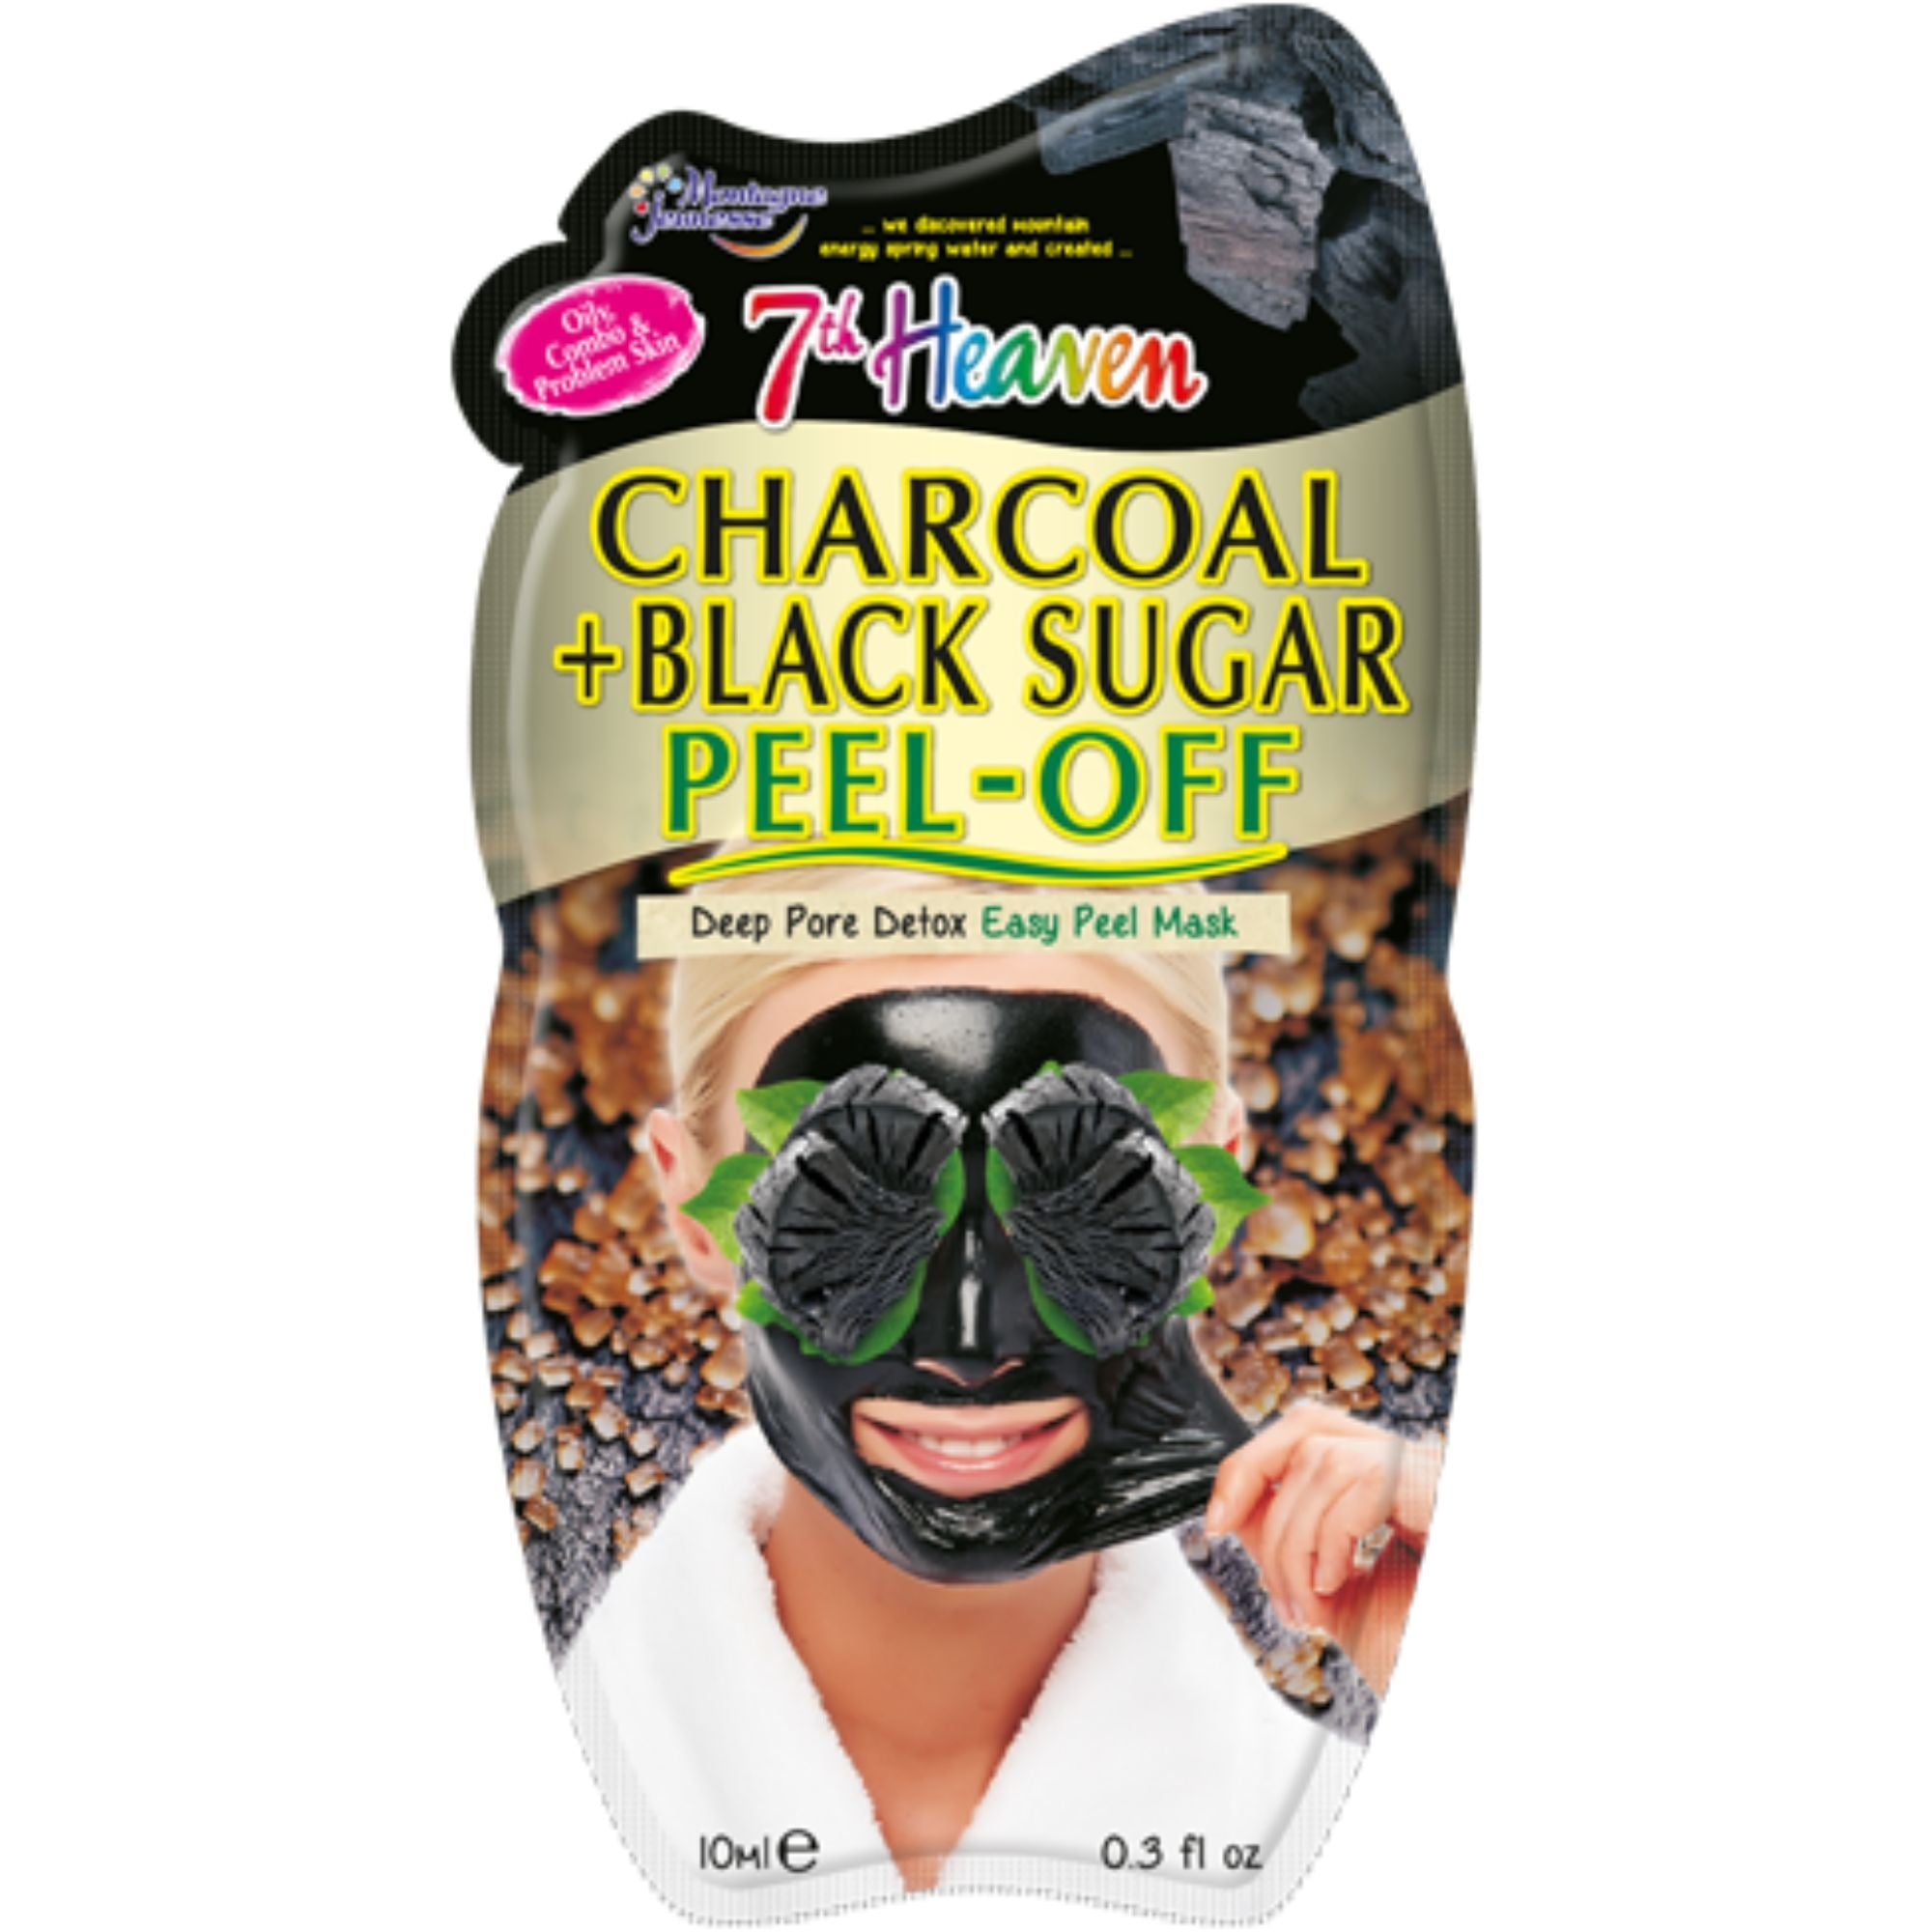 Charcoal & Black Sugar Peel-Off Mask